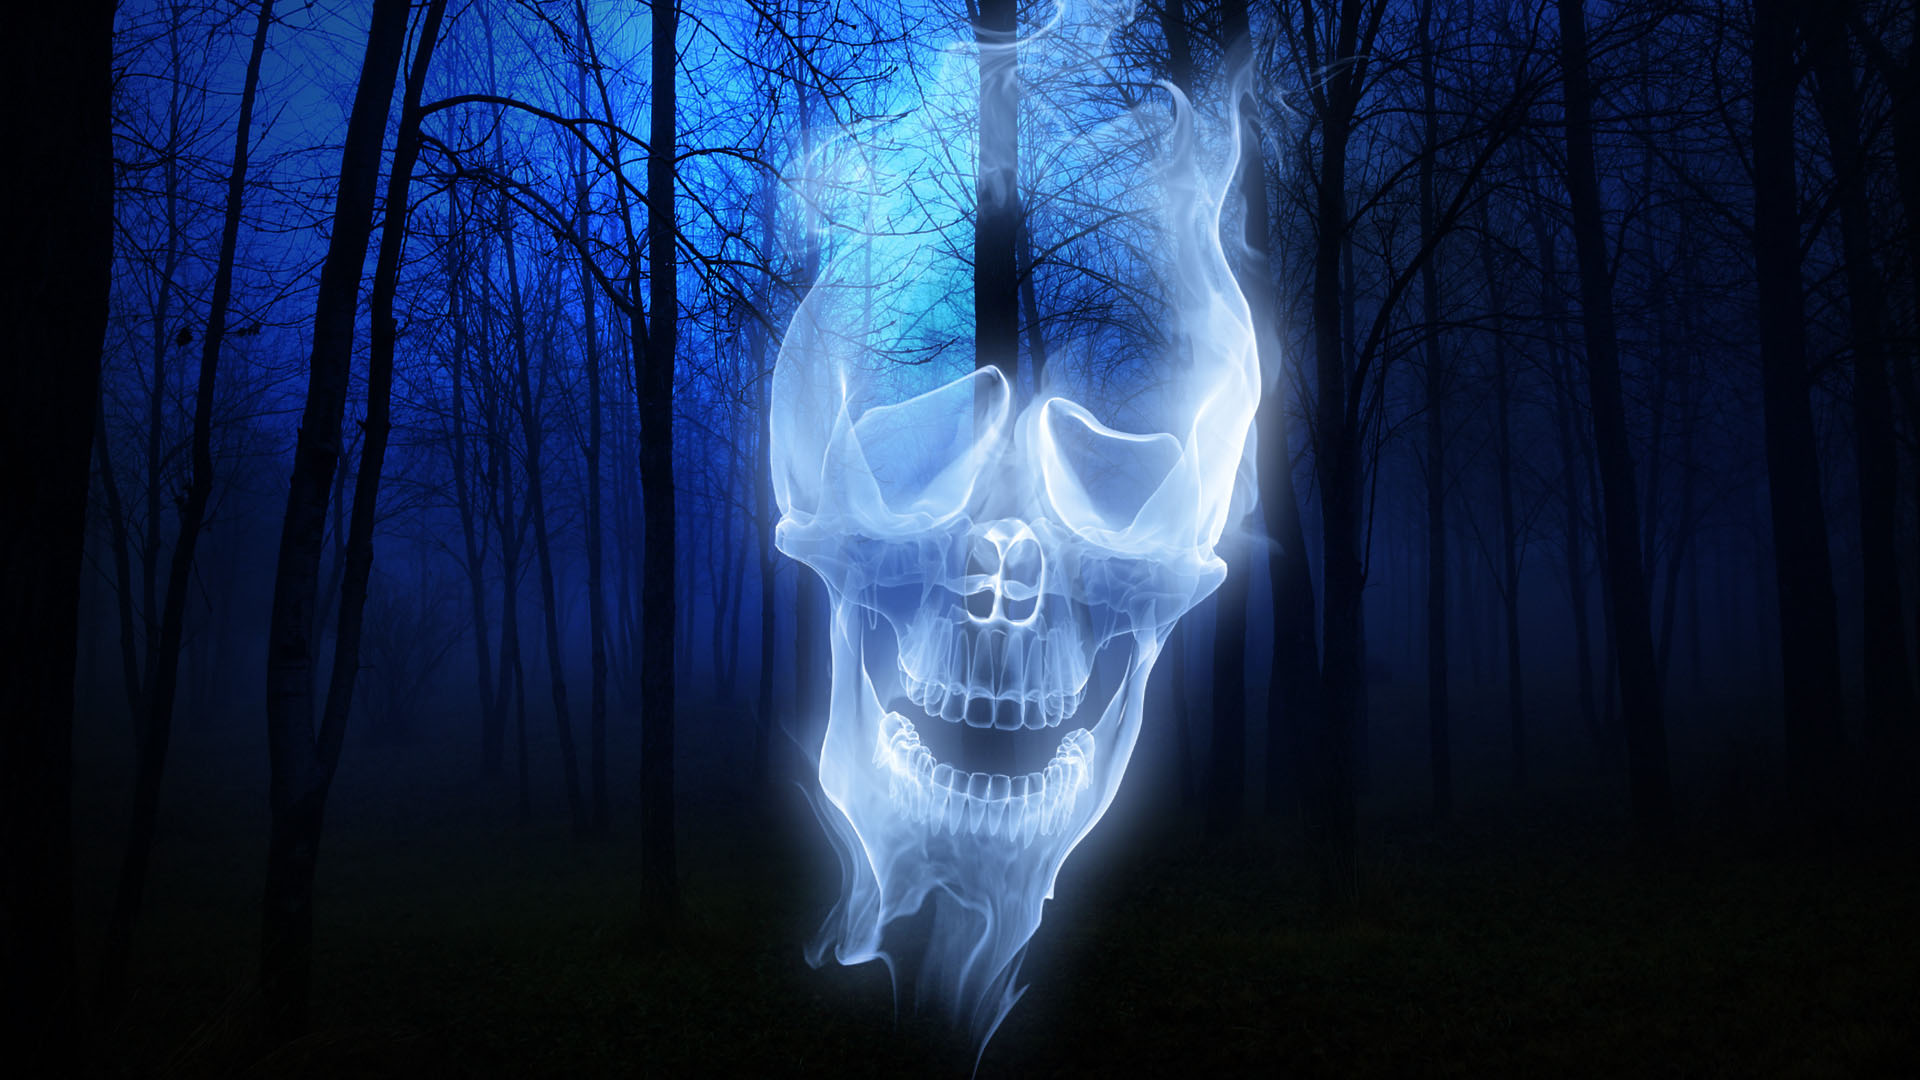 Forest Skull Ghost wallpapers Forest Skull Ghost stock photos 1920x1080